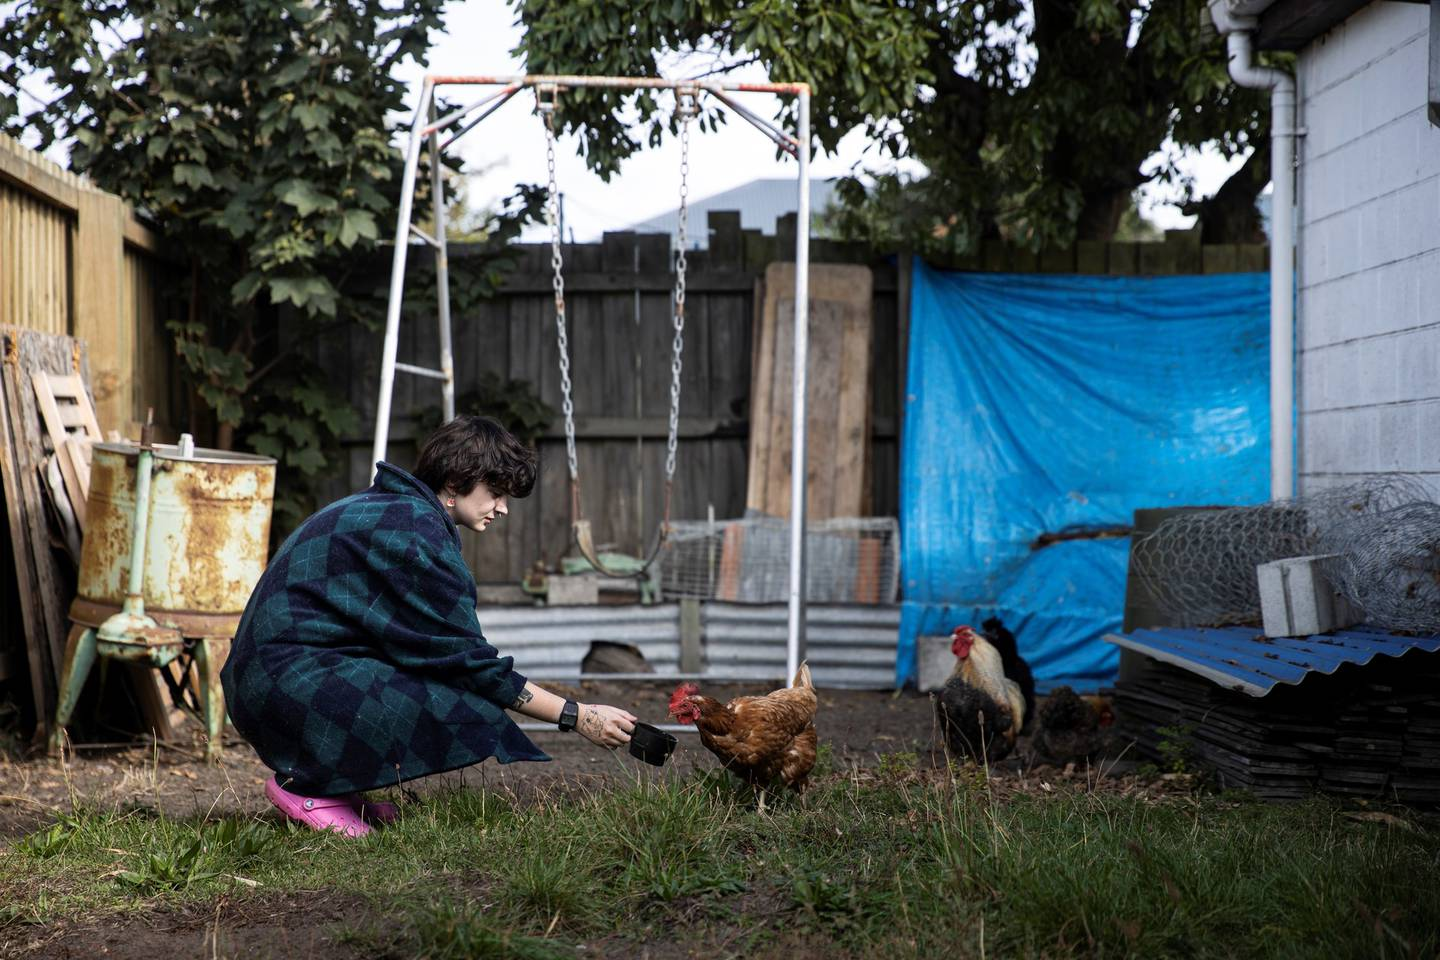 A complaint has been laid over the rooster's crowing at a residential North Beach property in...